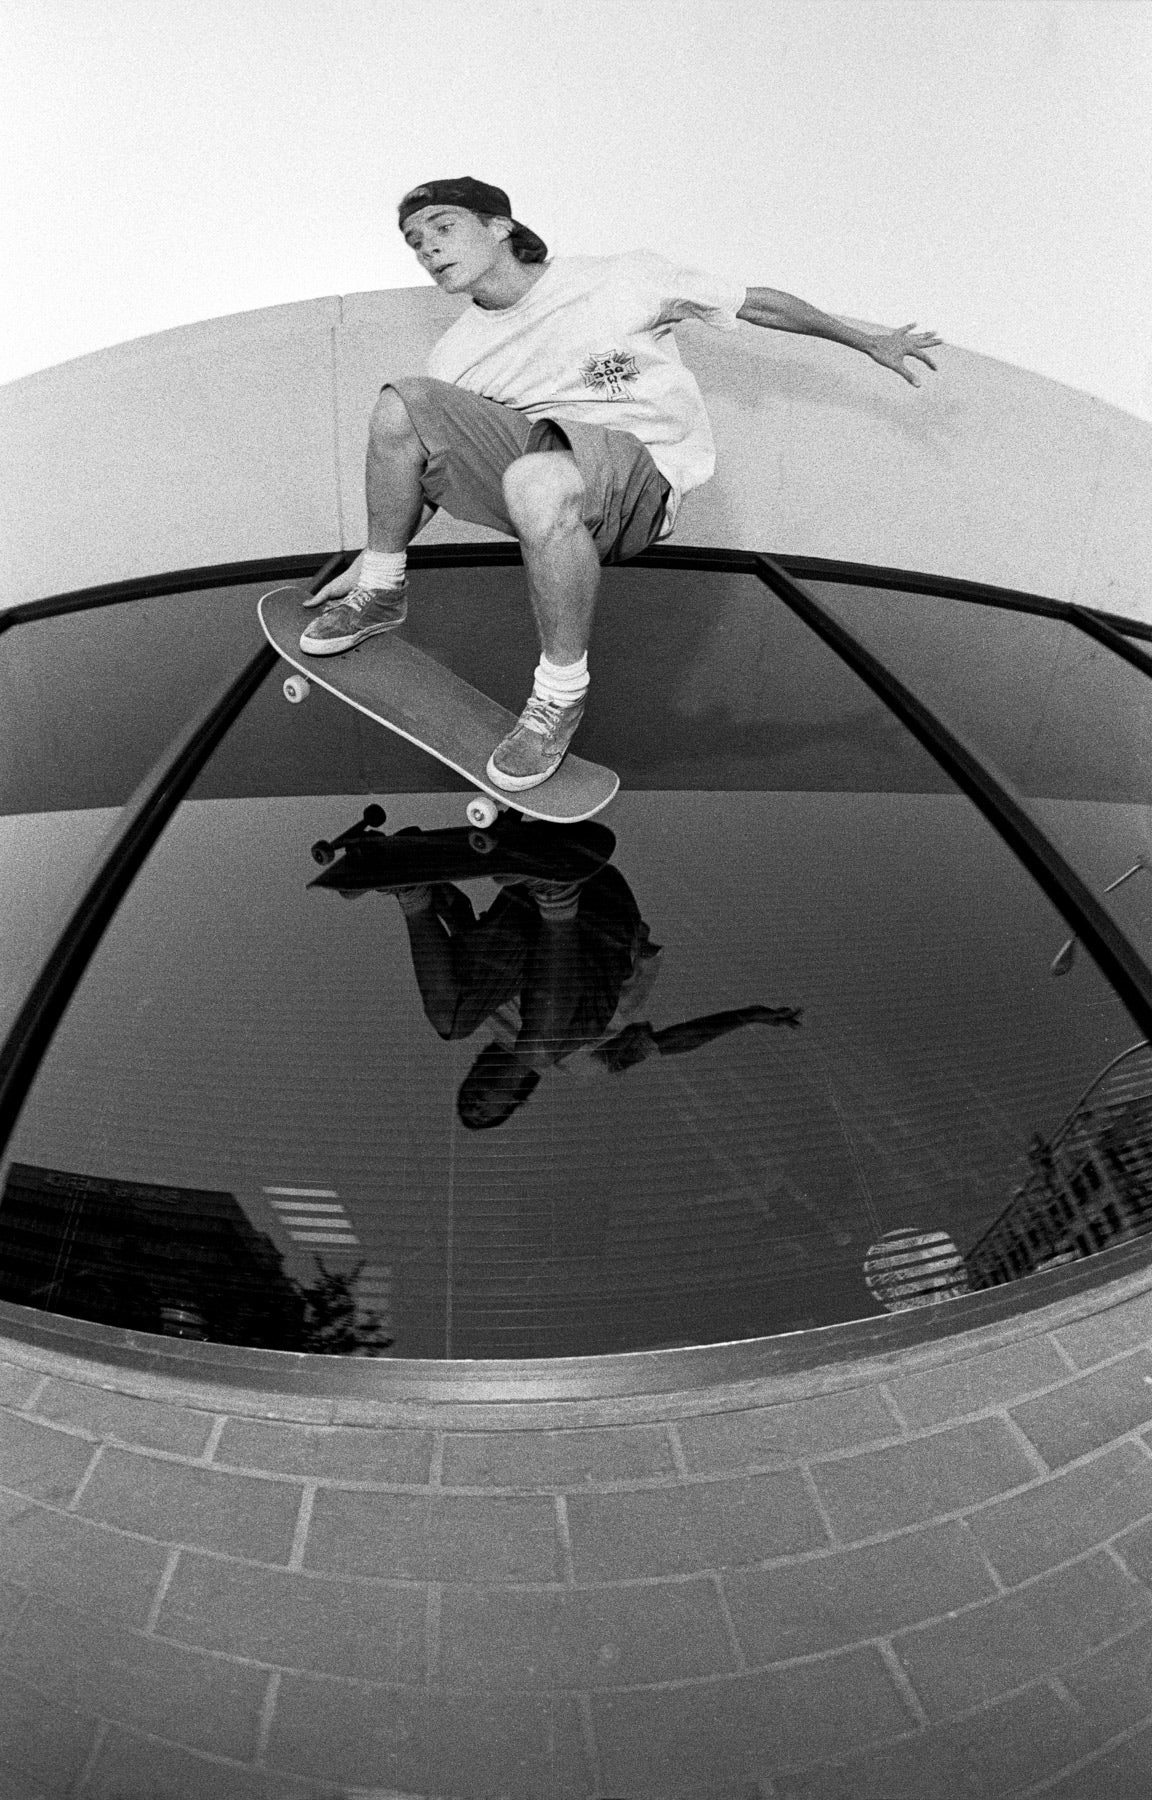 Image of John Cardiel, Glass ride, Bakersfield CA 1992, Spitfire Wheels ad, by Tobin Yelland